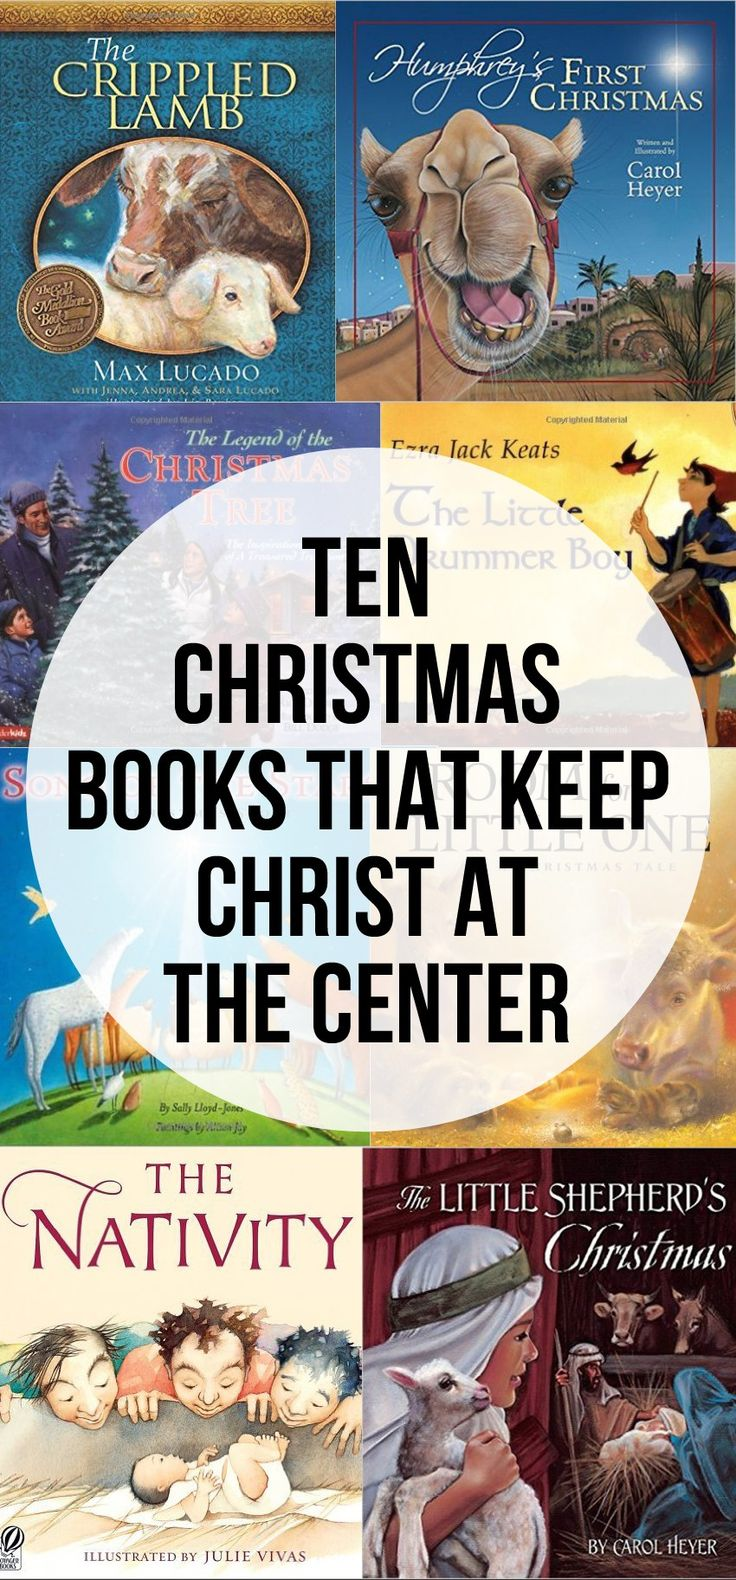 Ten Christmas Books the keep Christ at the Center. Ten Christian Christmas Books.